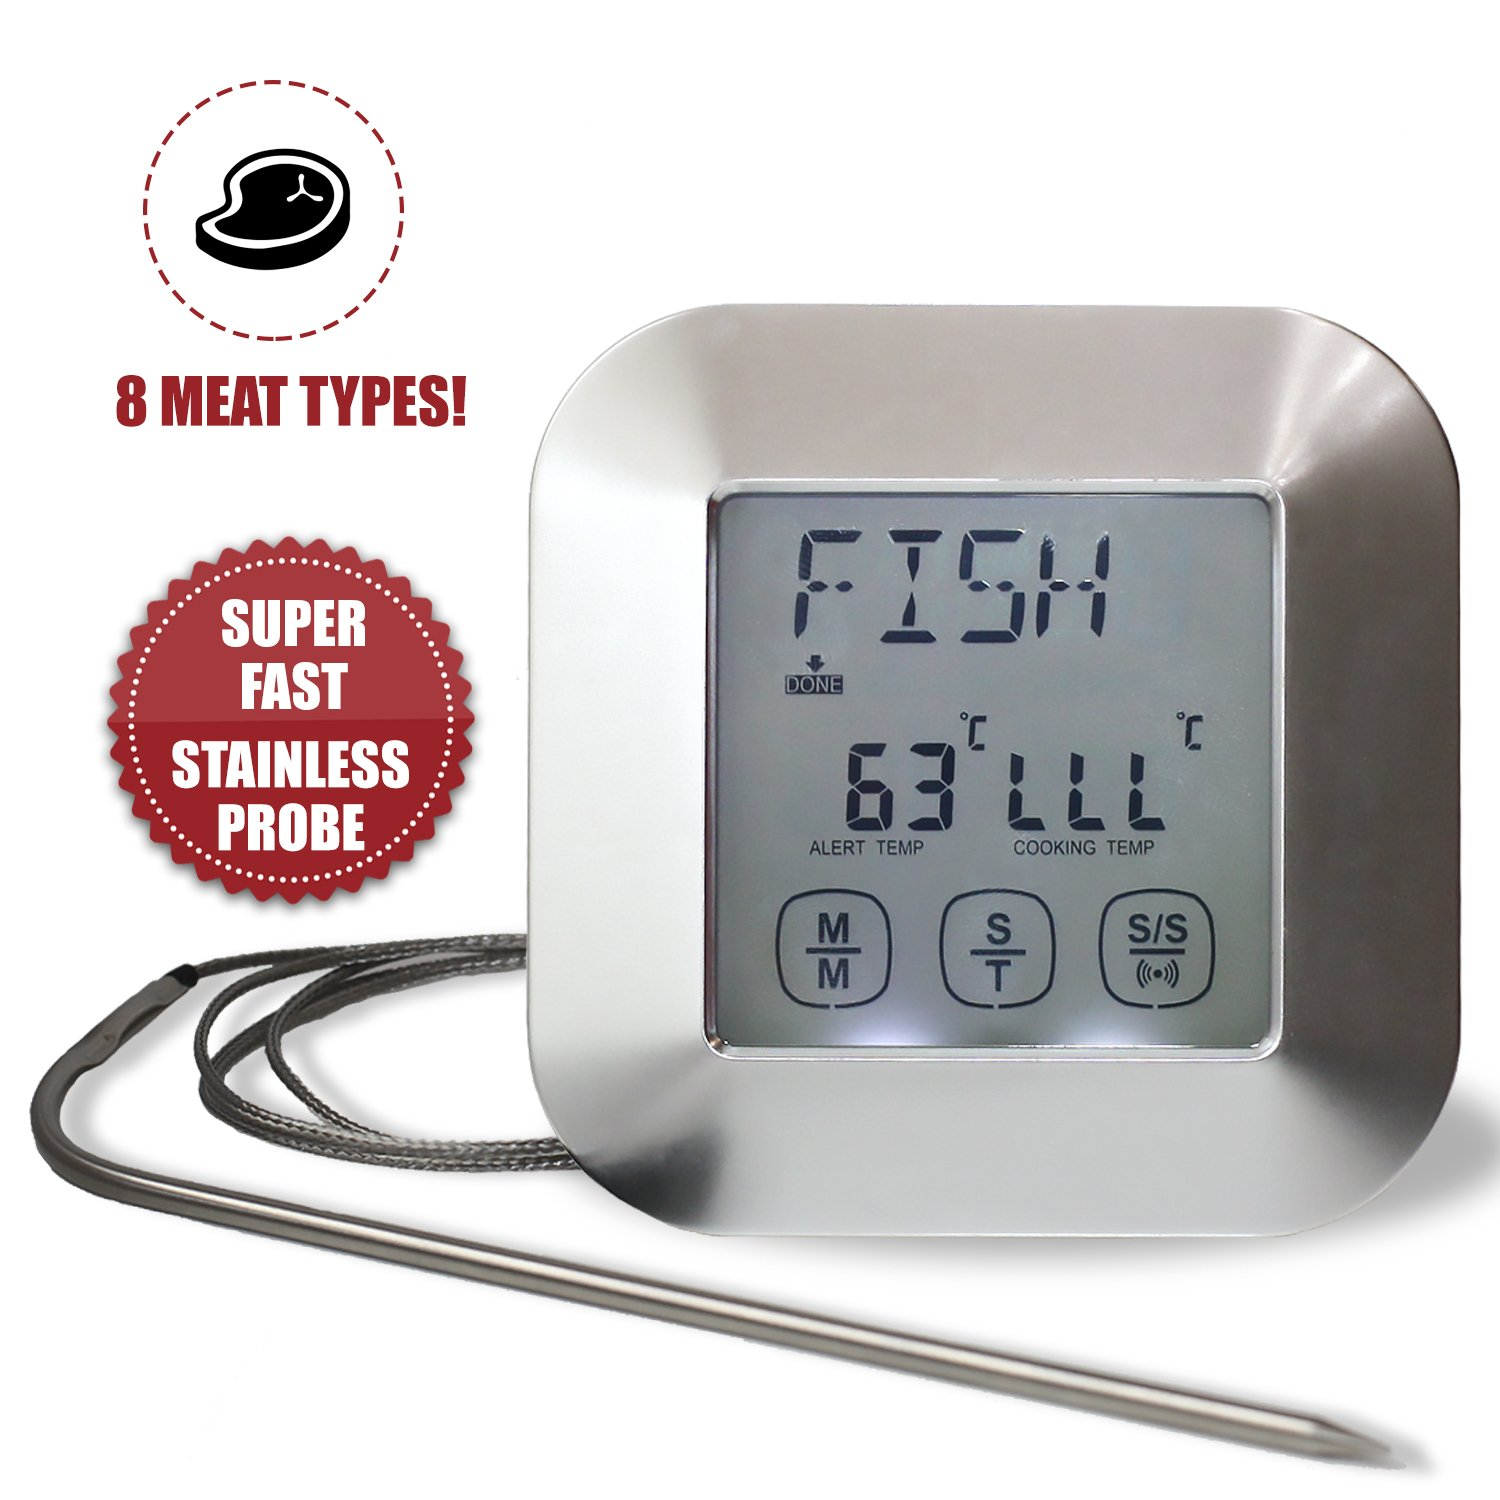 2 in 1 Touch Screen Digital Kitchen Food Thermometer with LCD display, Timer, with Stainless steel Probe, ideal for Meat, BBQ, Grill. iHubr